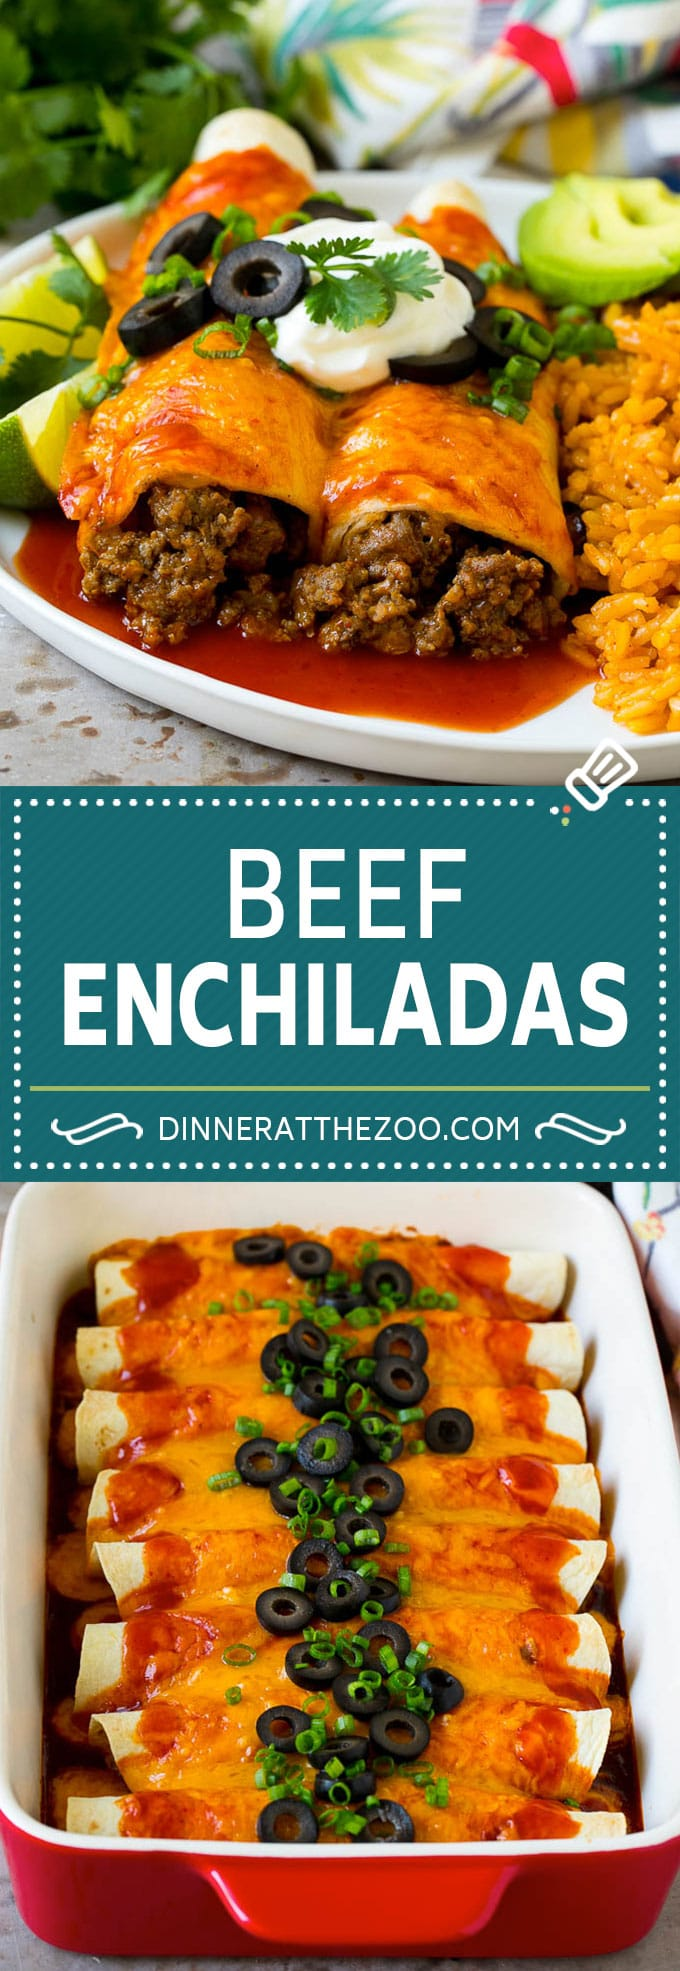 Beef Enchiladas Recipe #beef #groundbeef #mexicanfood #enchiladas #cheese #dinner #dinneratthezoo